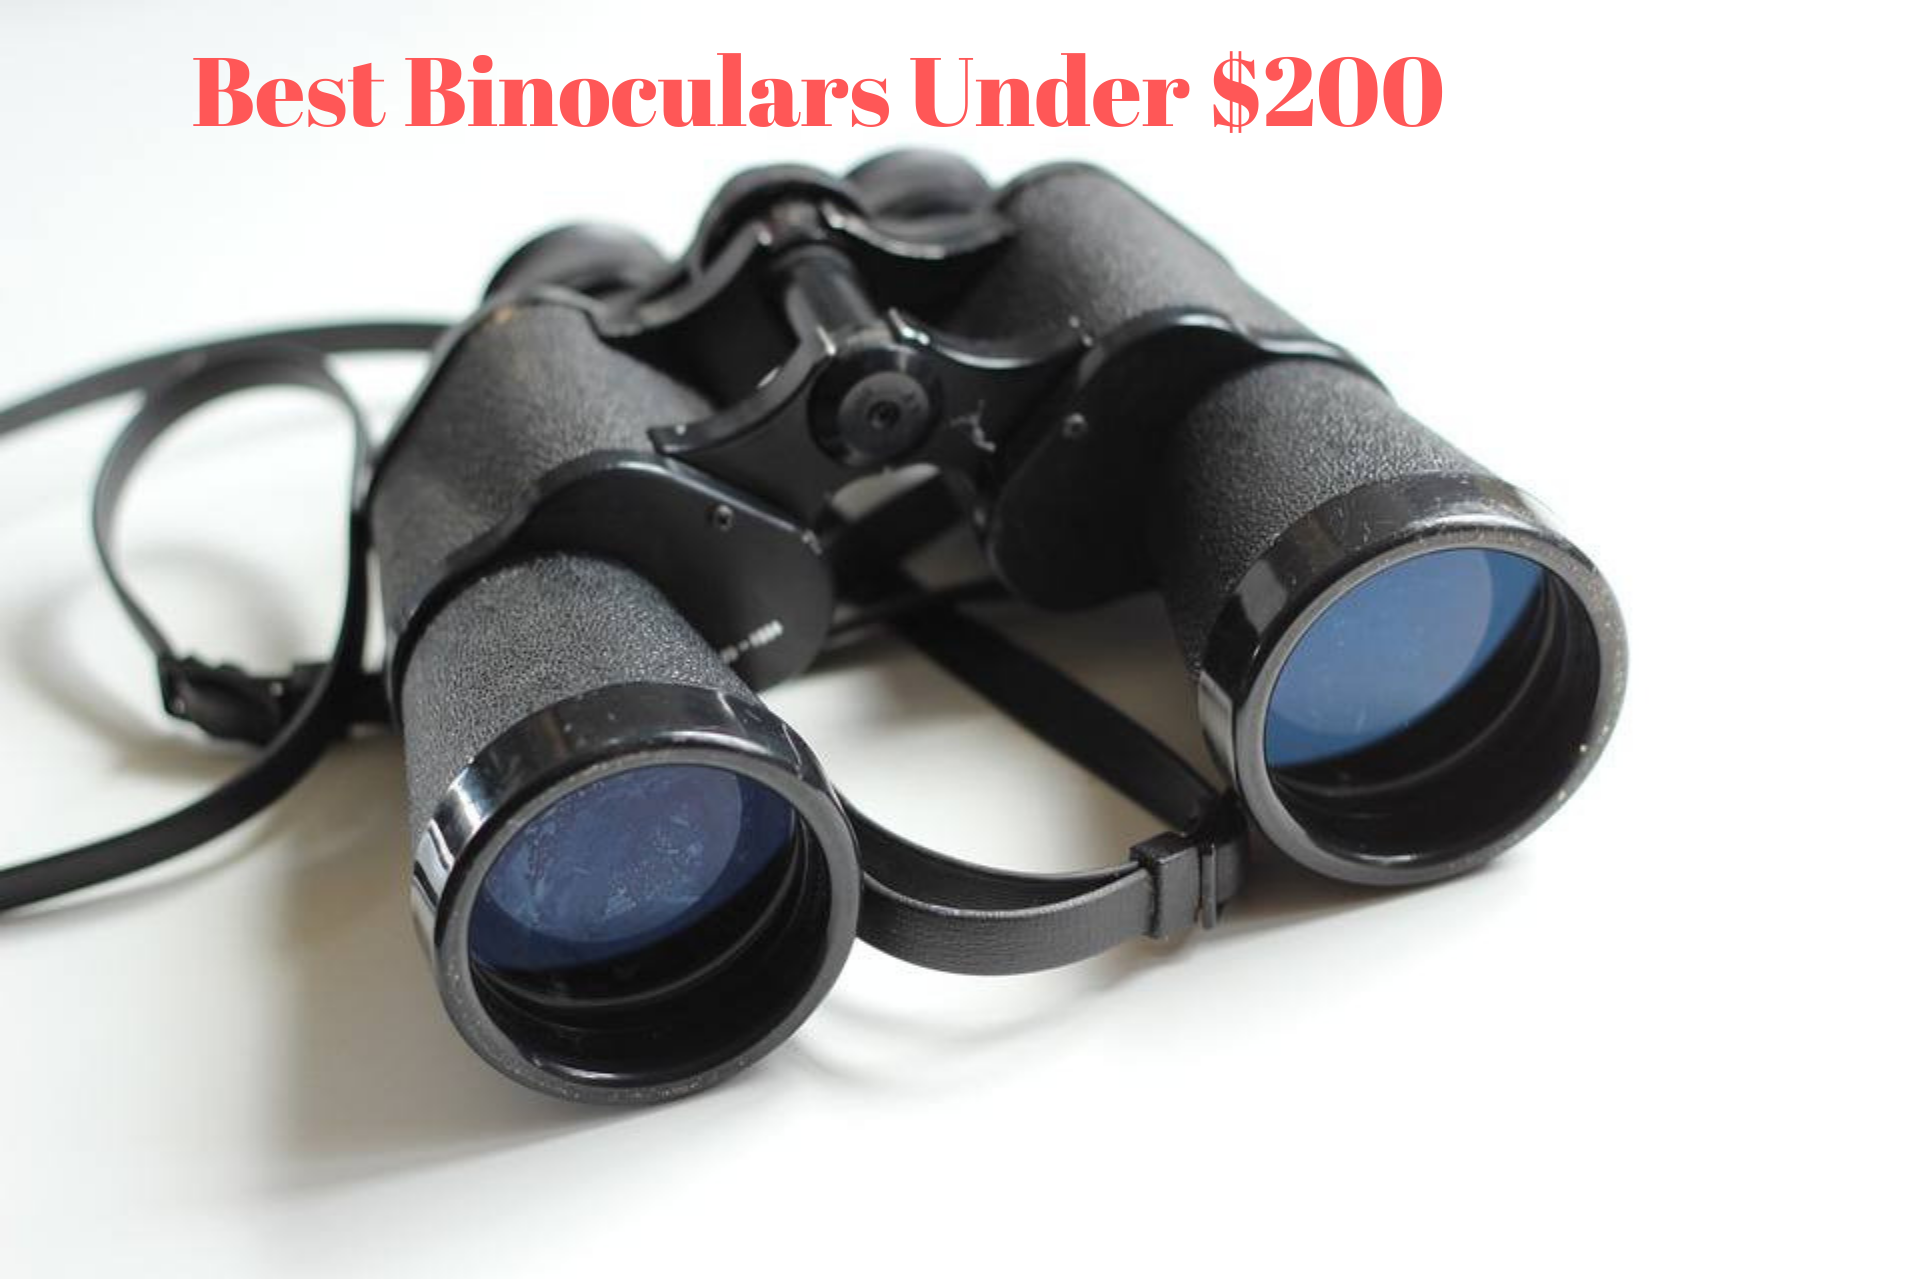 Best Binoculars Under 200 dollar